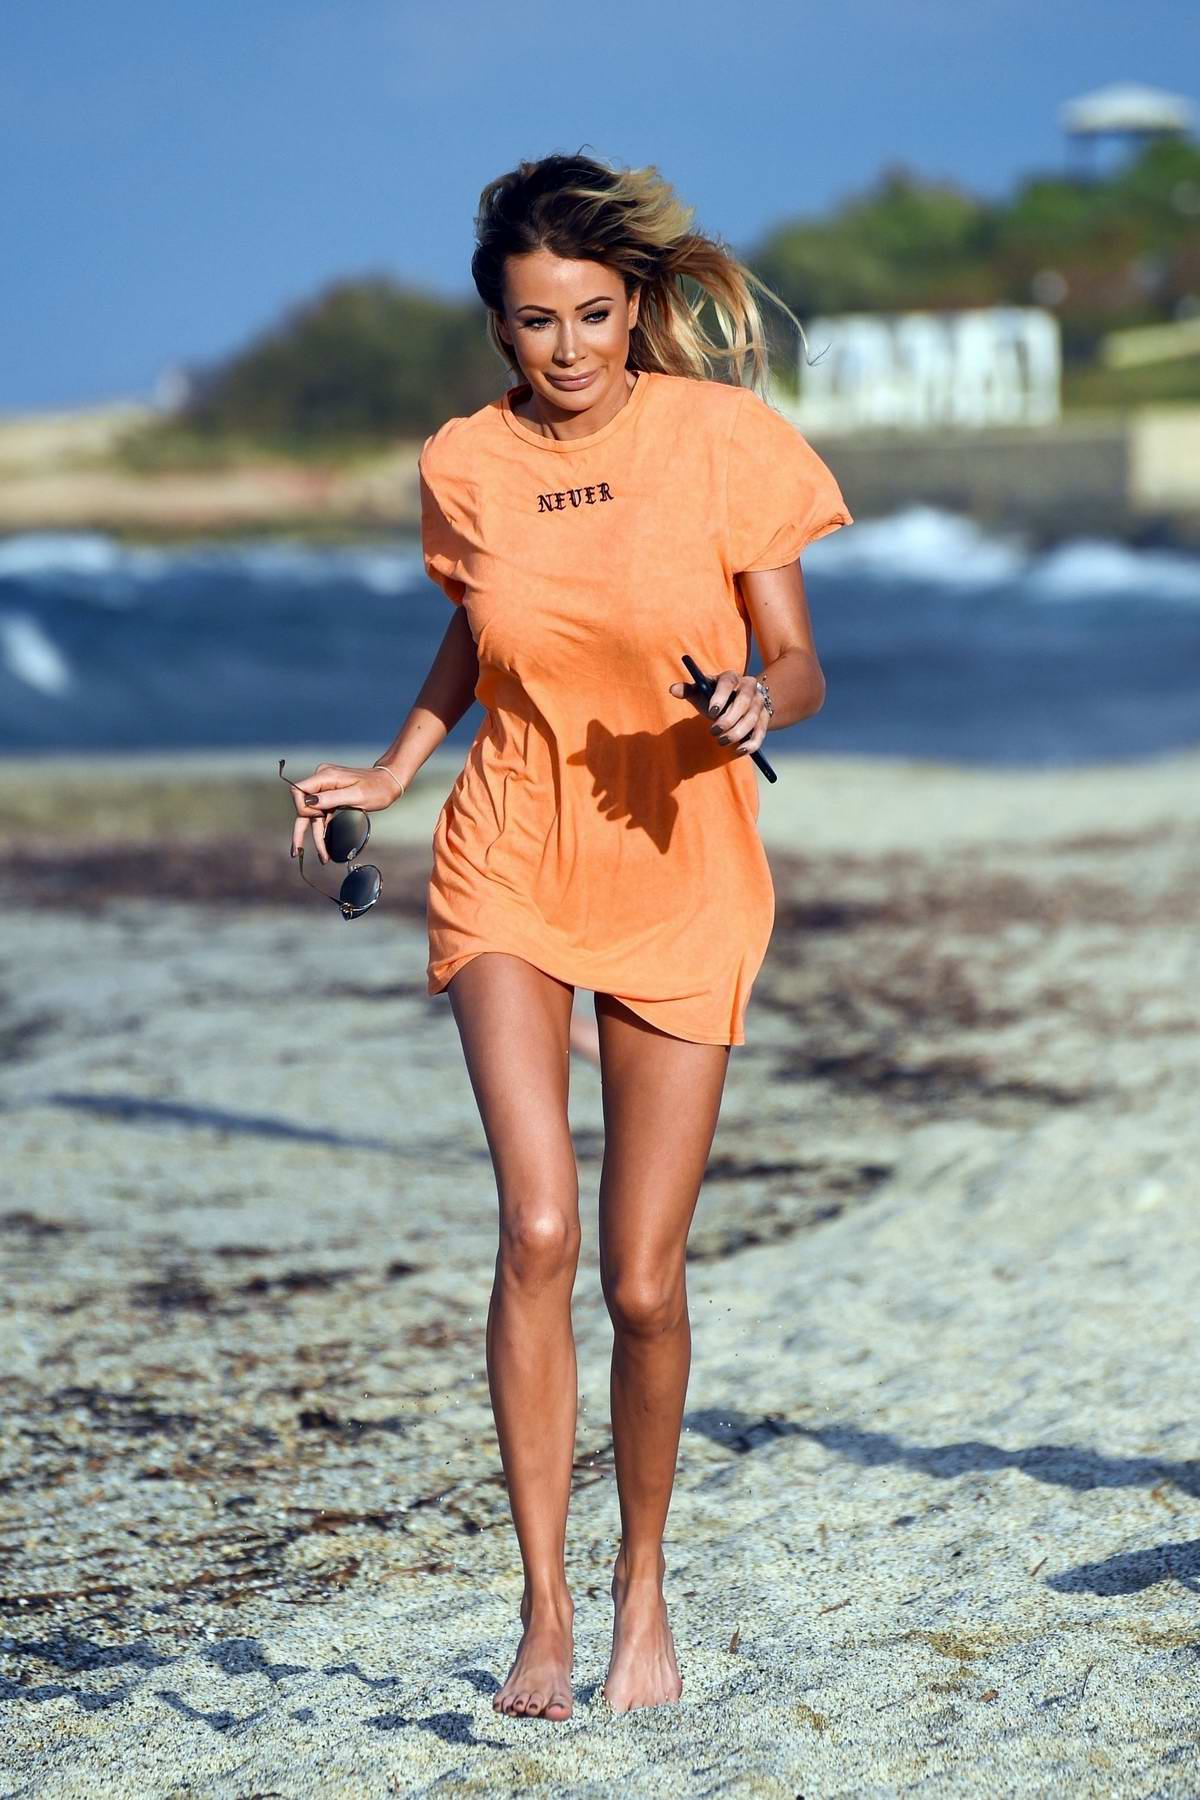 Olivia Attwood spotted in an orange t-shirt as she enjoys the beach in Greece